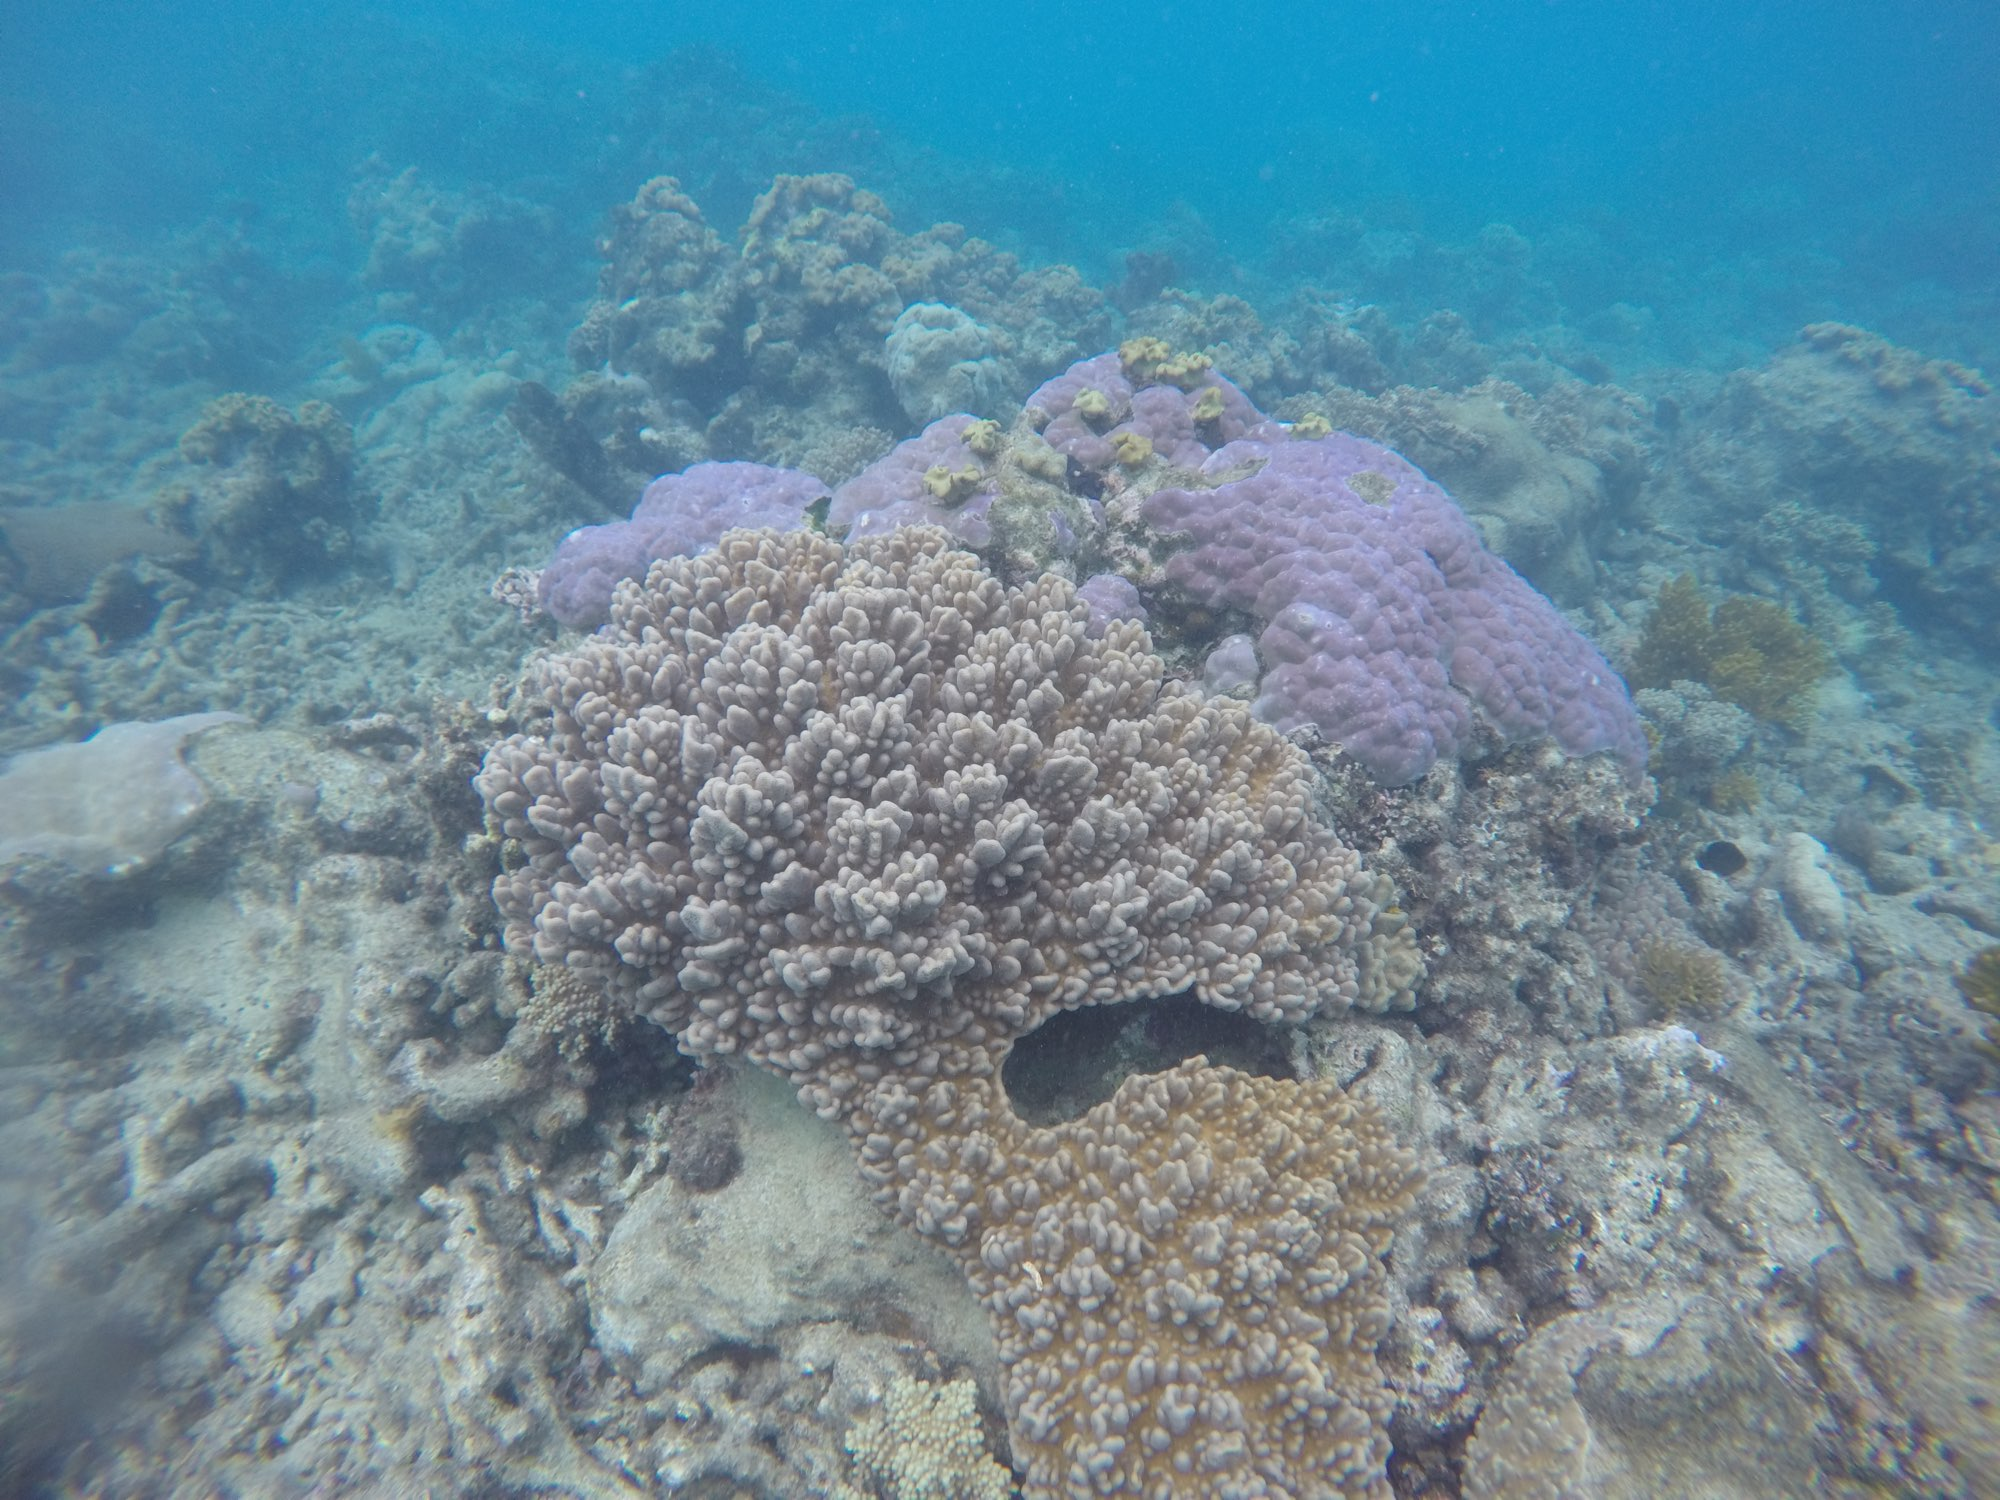 NASA Begins Study of Australia's Great Barrier Reef / Boing Boing